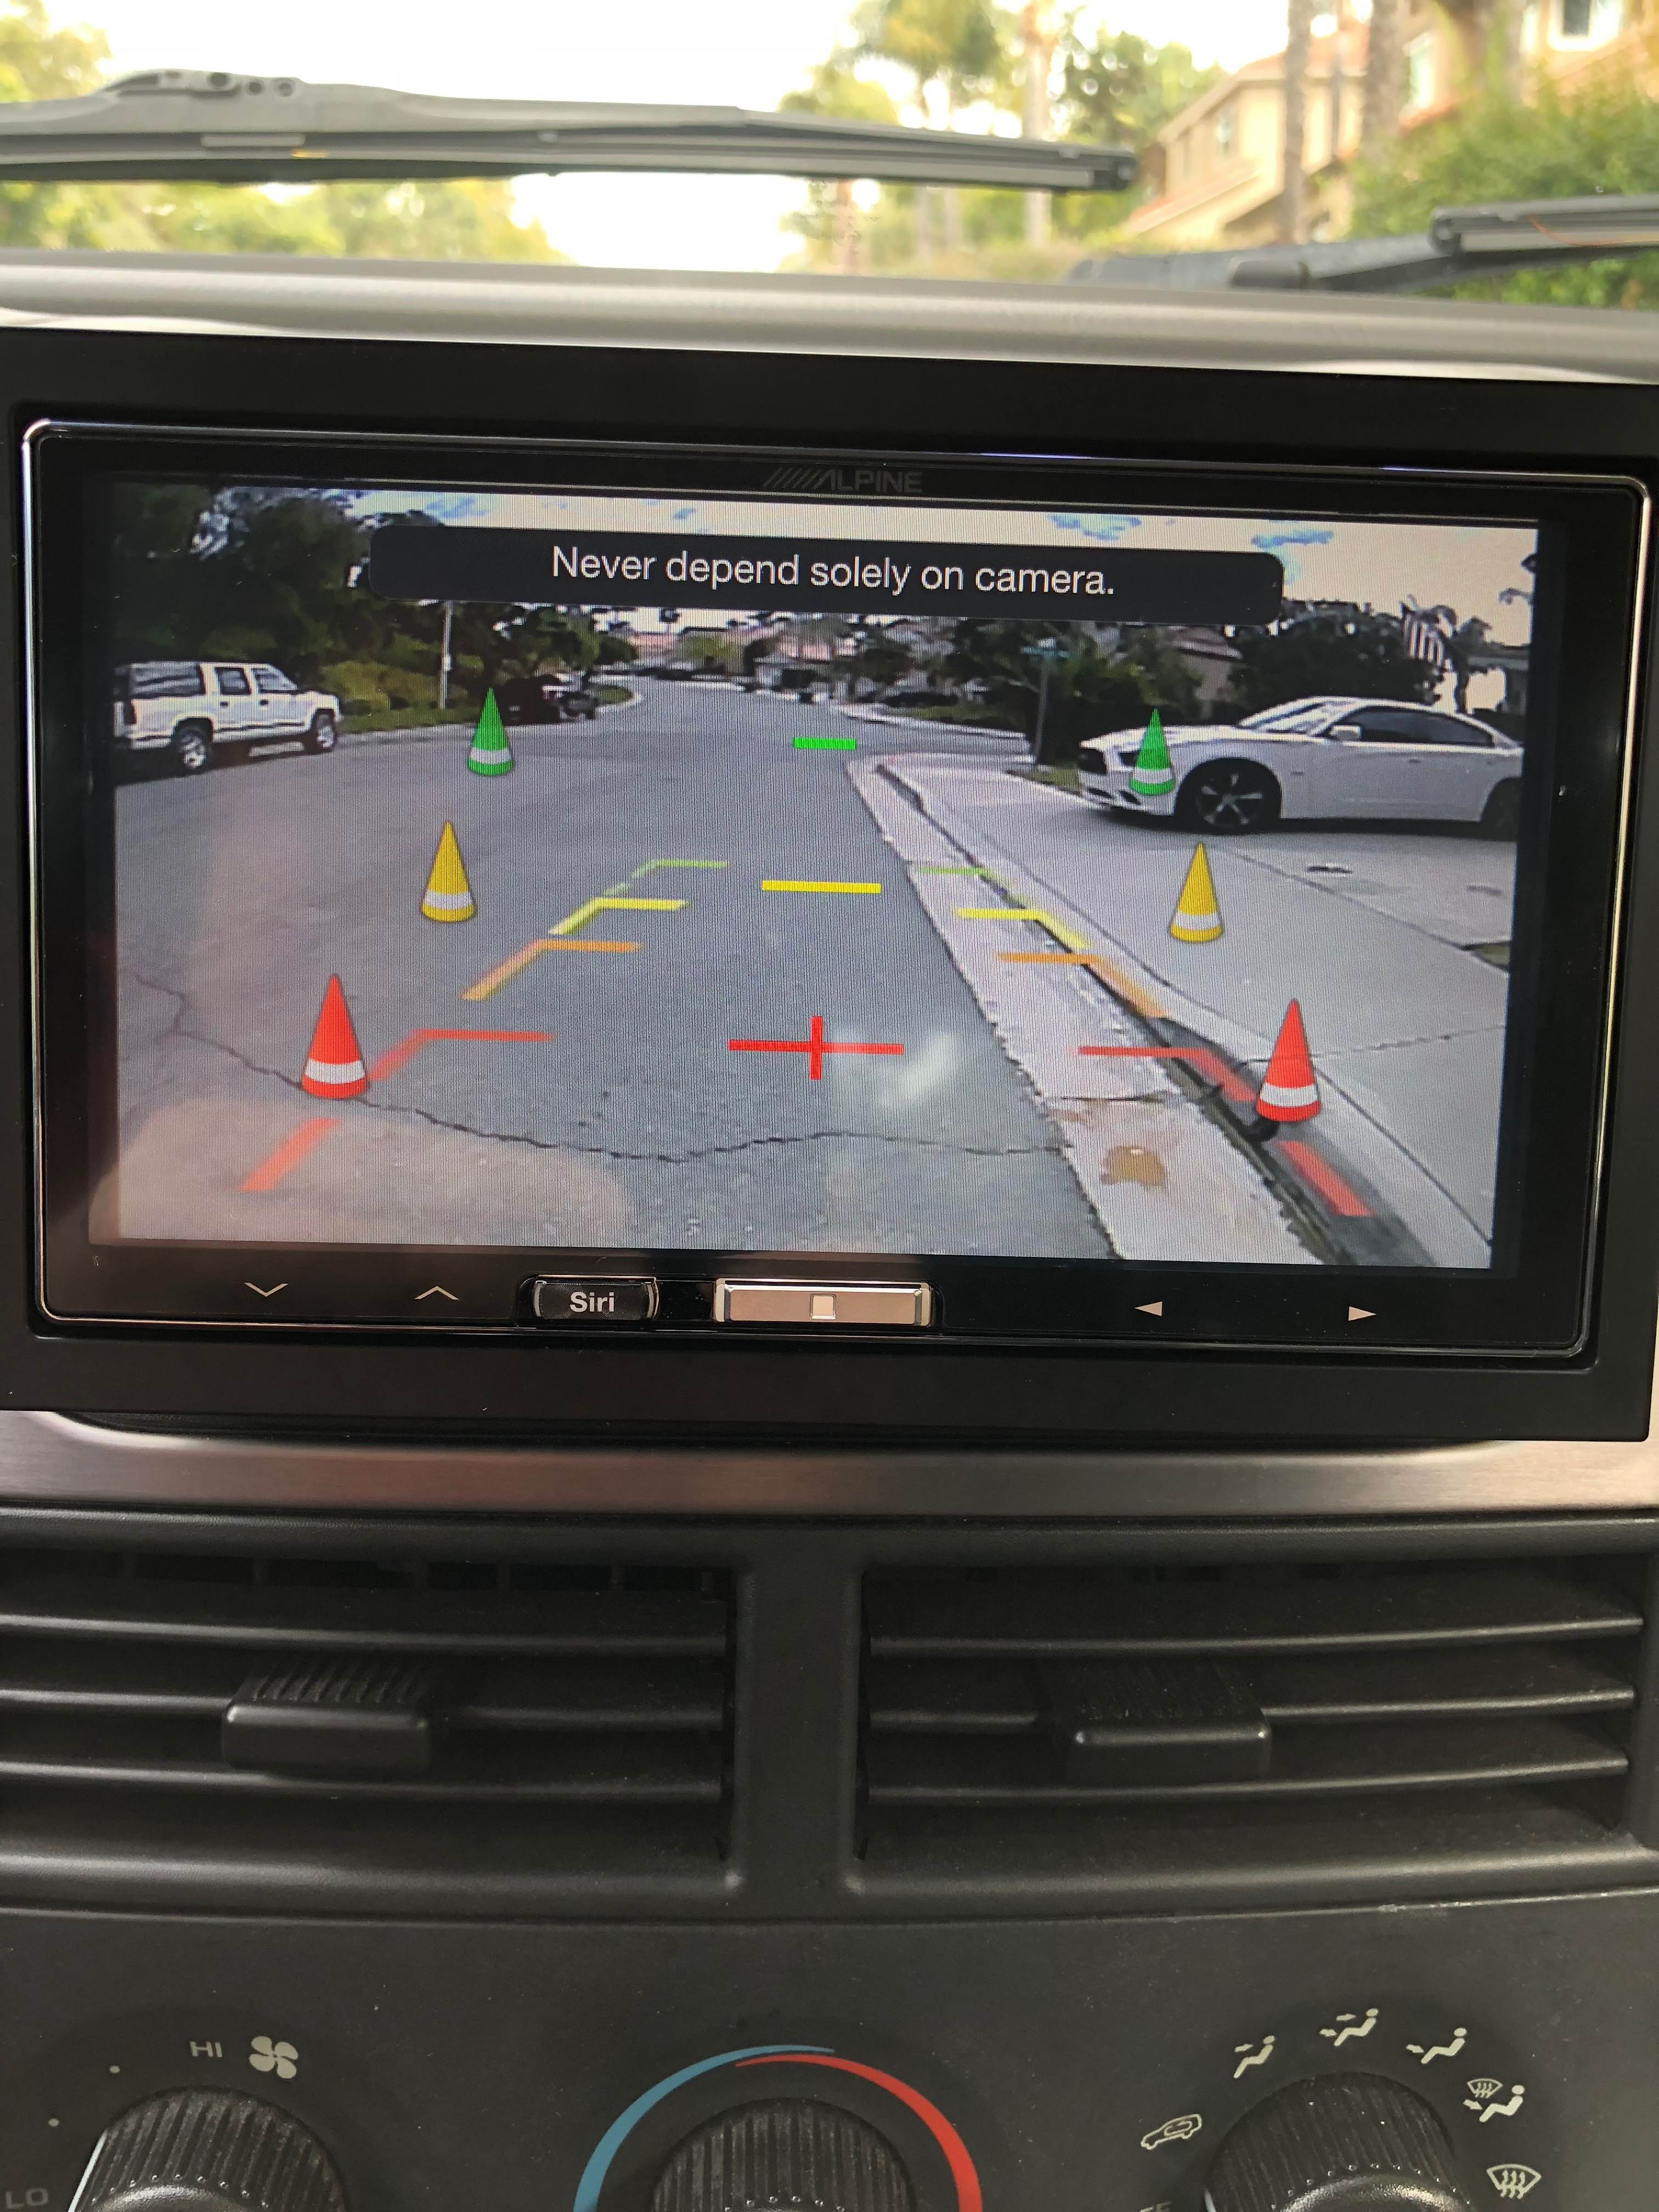 Carplay Wireless Aftermarket Head Unit Page 2 Cigarette Lighter Wiring Plug Jeep Cherokee Forum The Radio So Only Think You Can Do Is Switch To Another Input Like Itunes Stop Camera Was Located In Top Middle Of